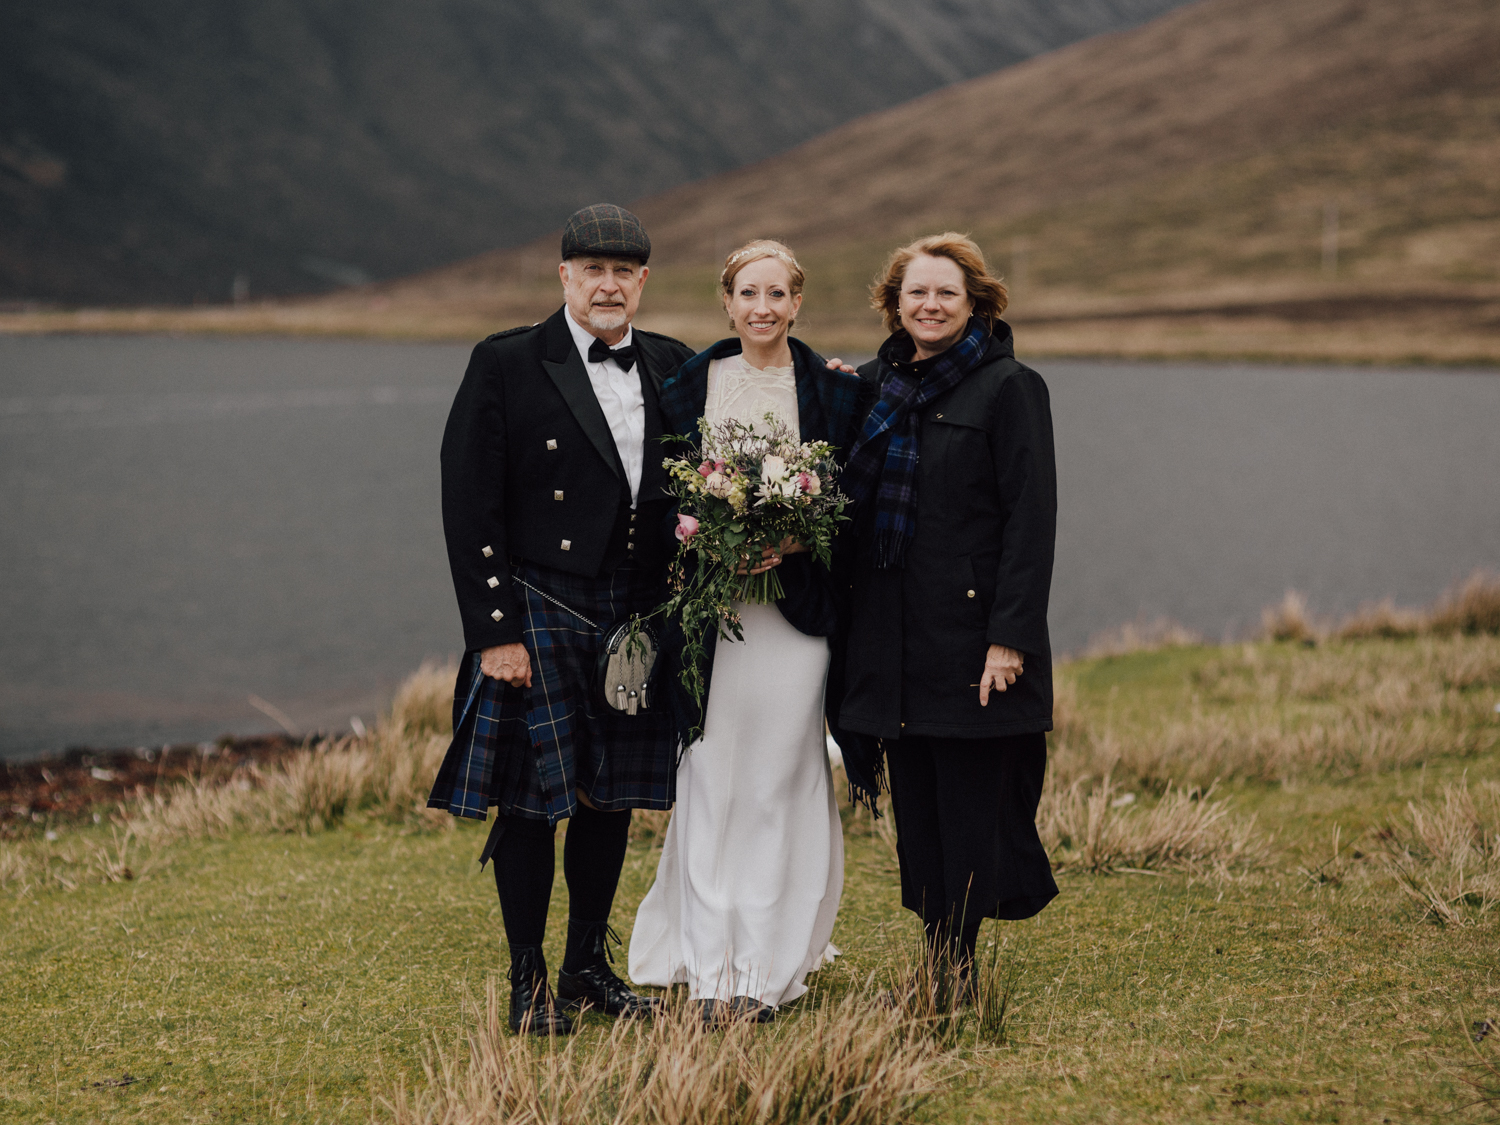 capyture-wedding-photographer-destination-elopement-isle-skye-scotland-429